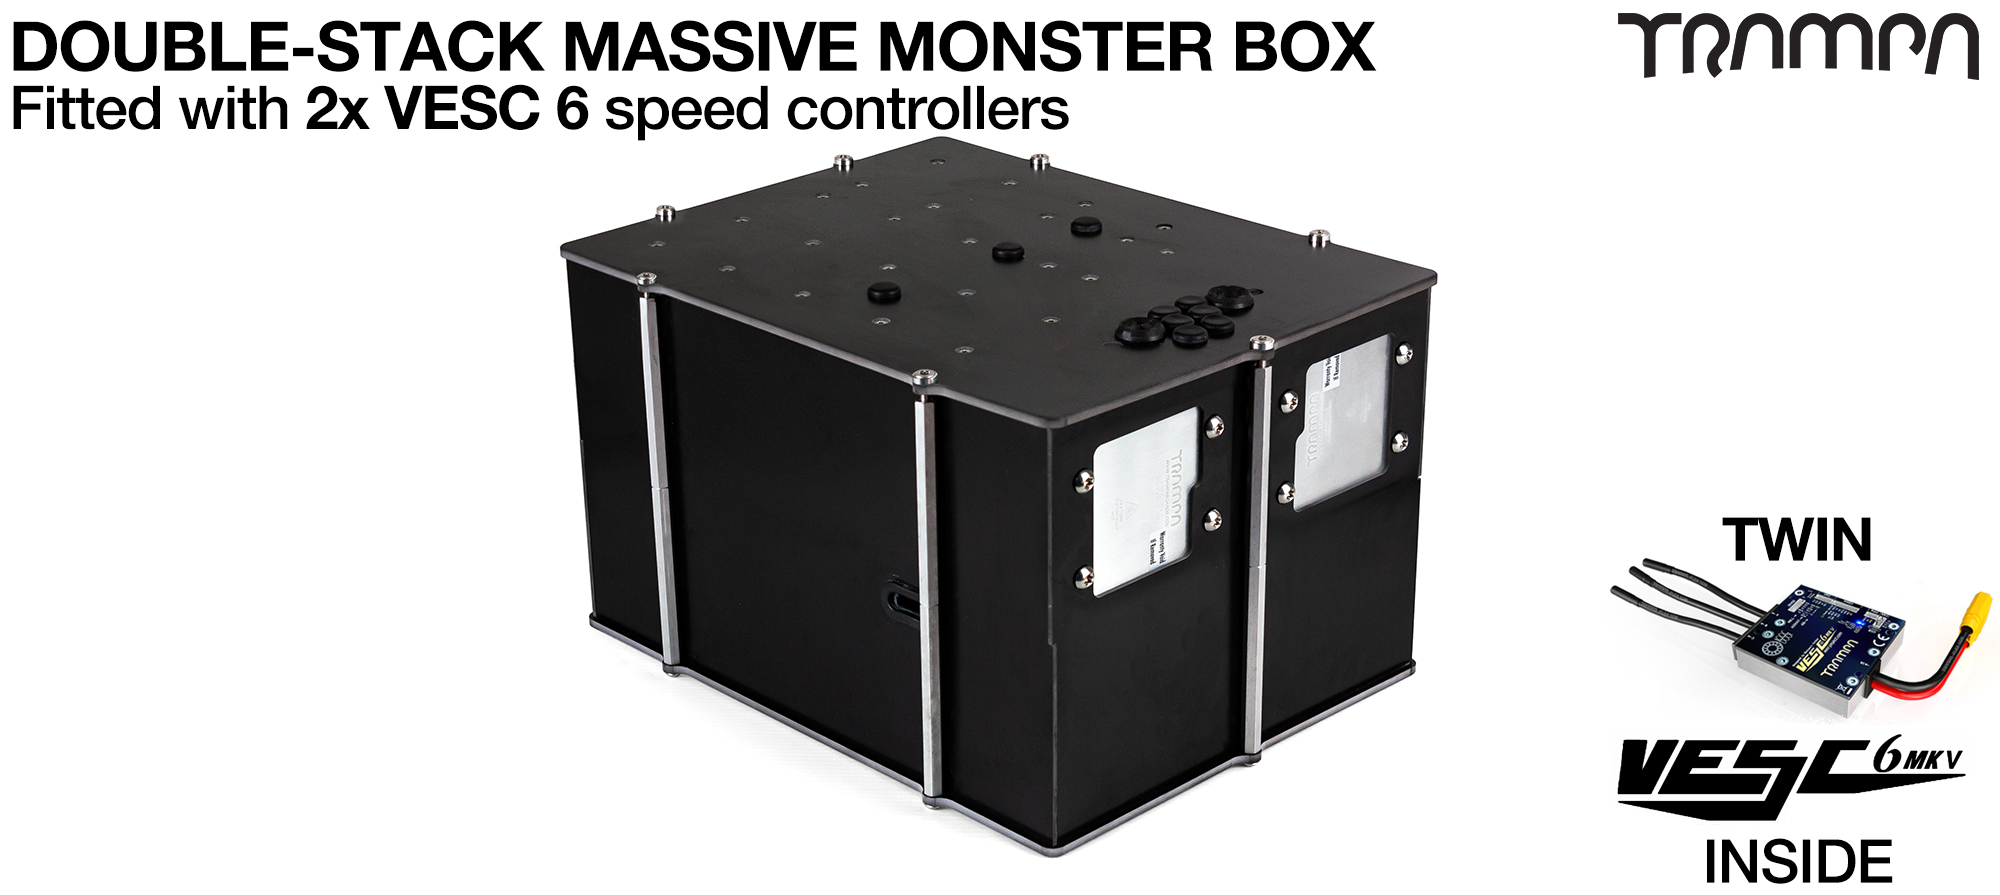 2WD DOUBLE STACK MASSIVE MONSTER Box with 2x VESC 6 & NRF Fitted